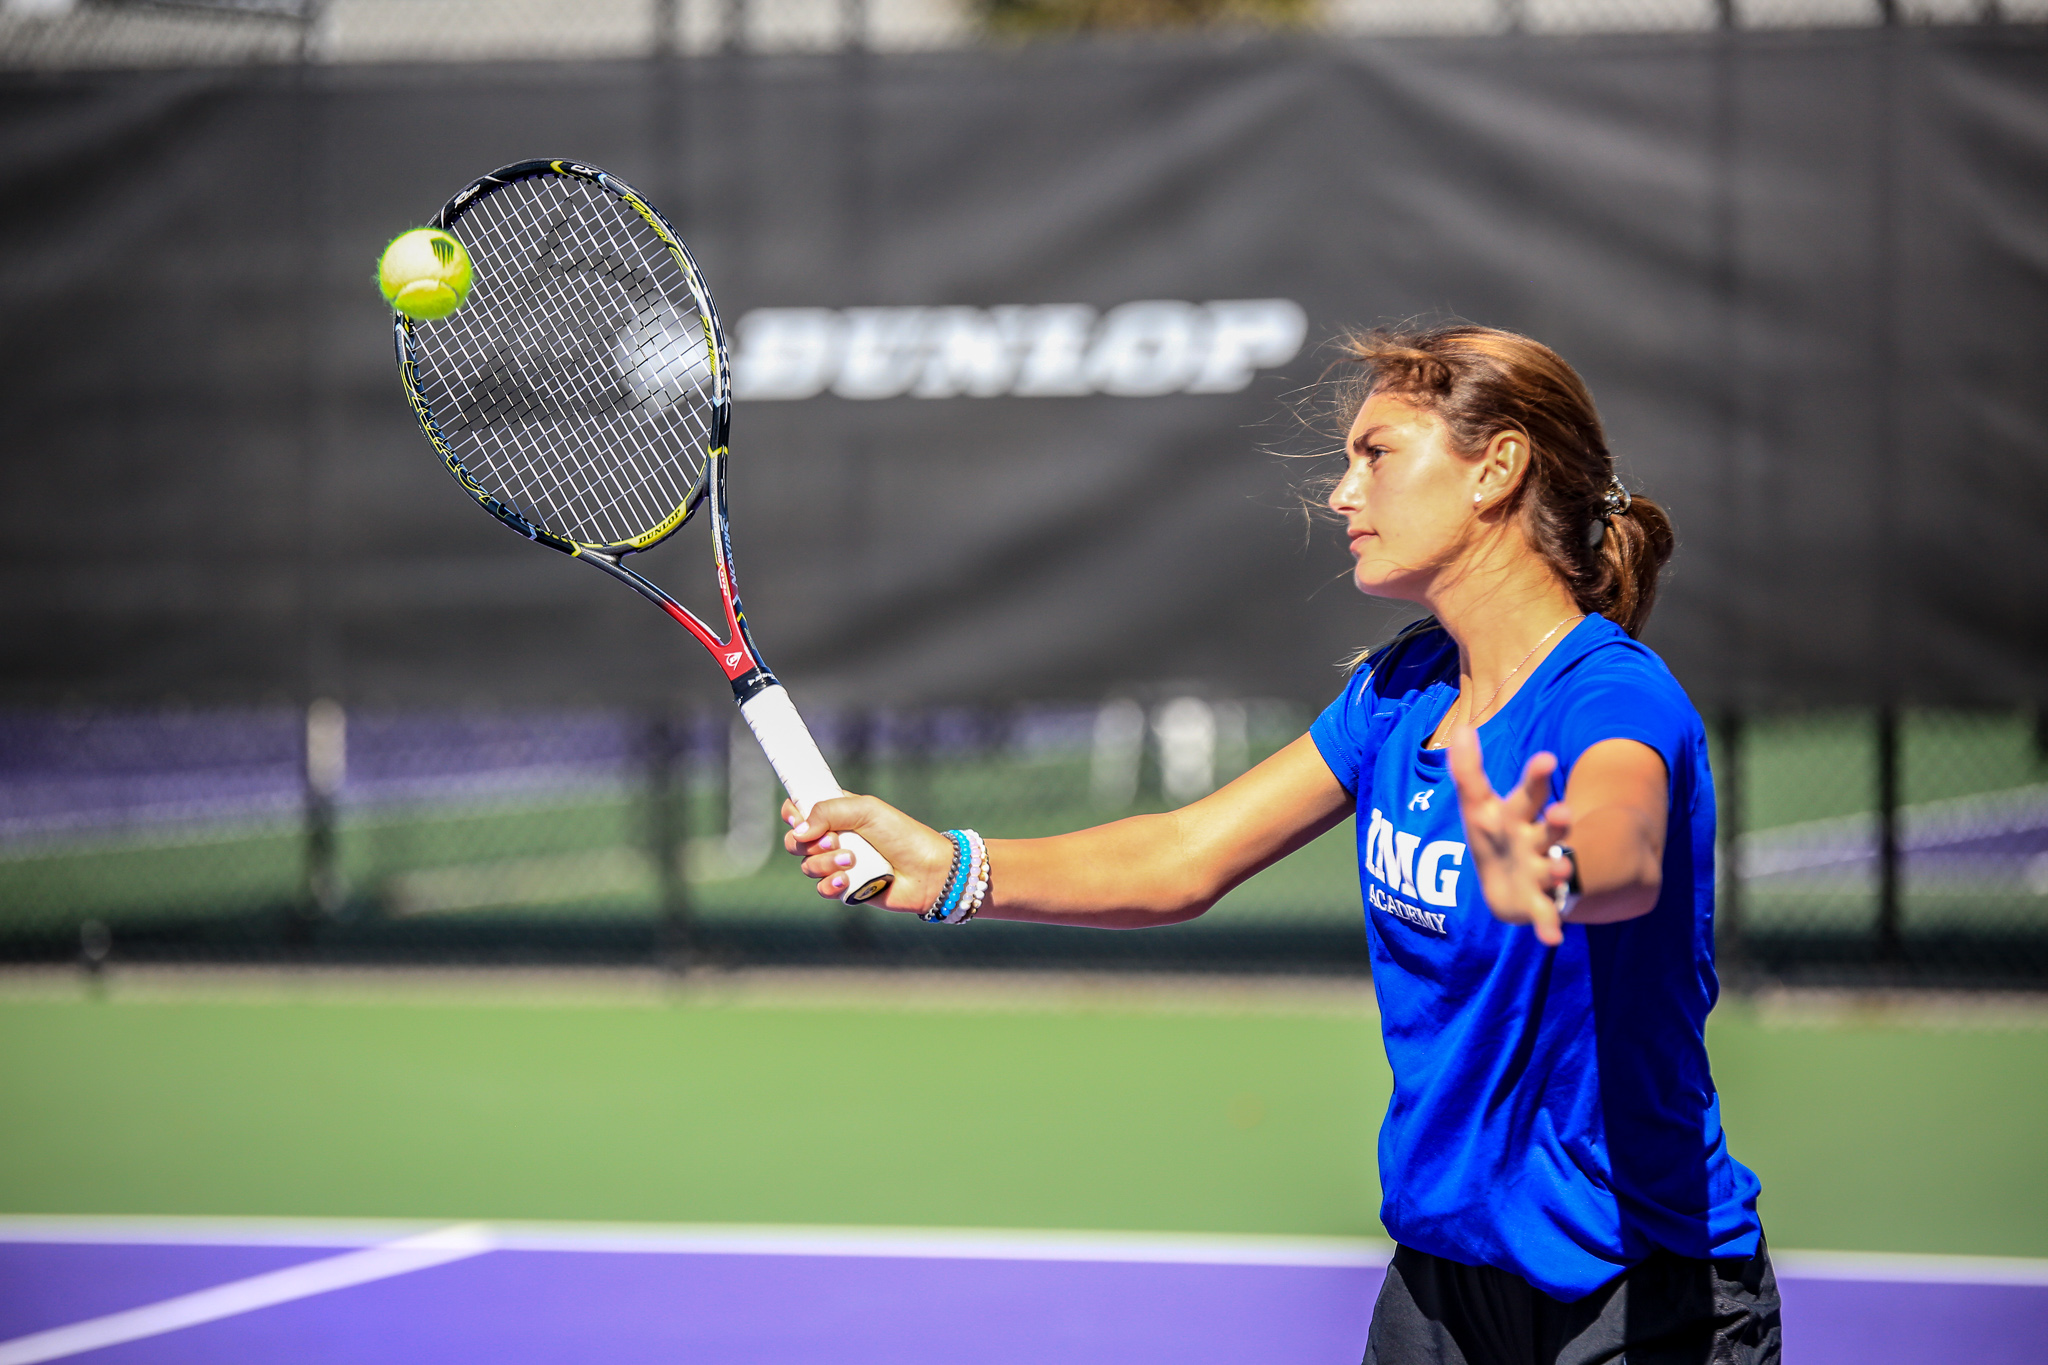 Girl hitting a tennis shot at IMG Academy | IMG Academy